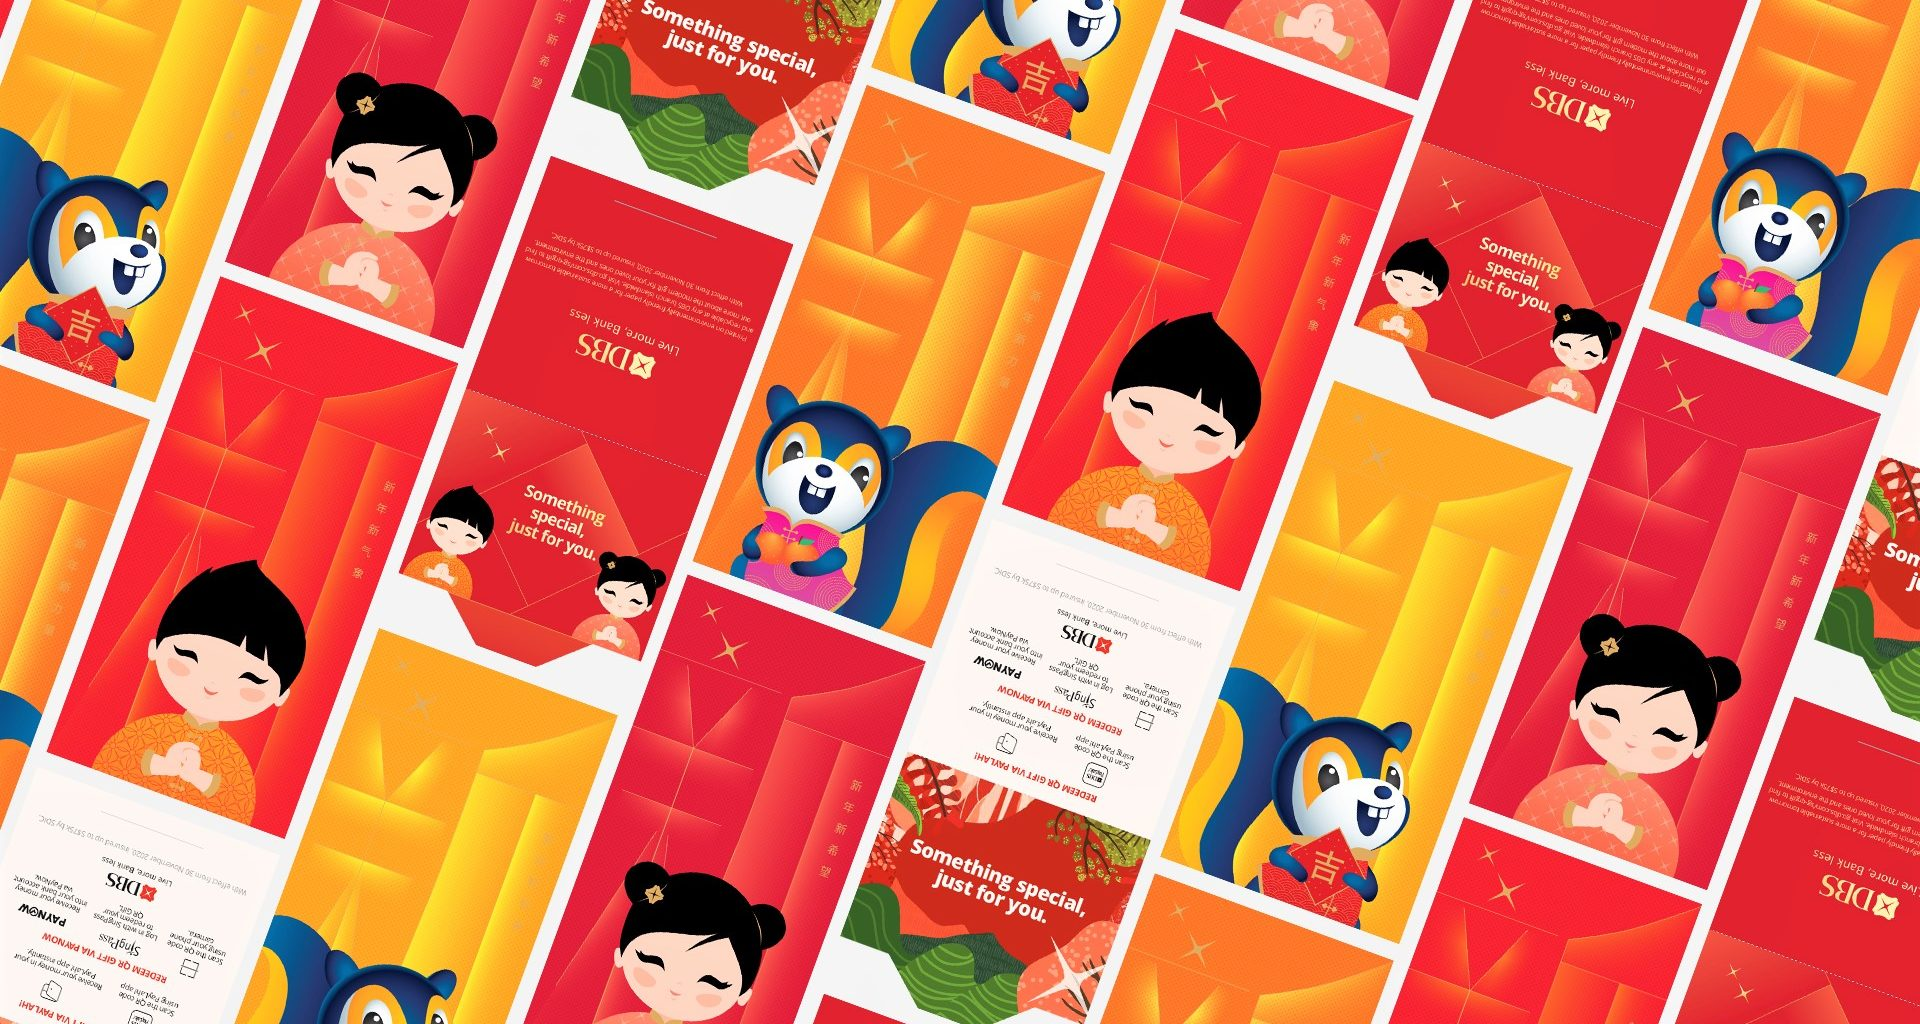 DBS/POSB encourages a contactless, hassle-free gifting this CNY with digital options: DBS QR Gift and DBS eGift - Alvinology